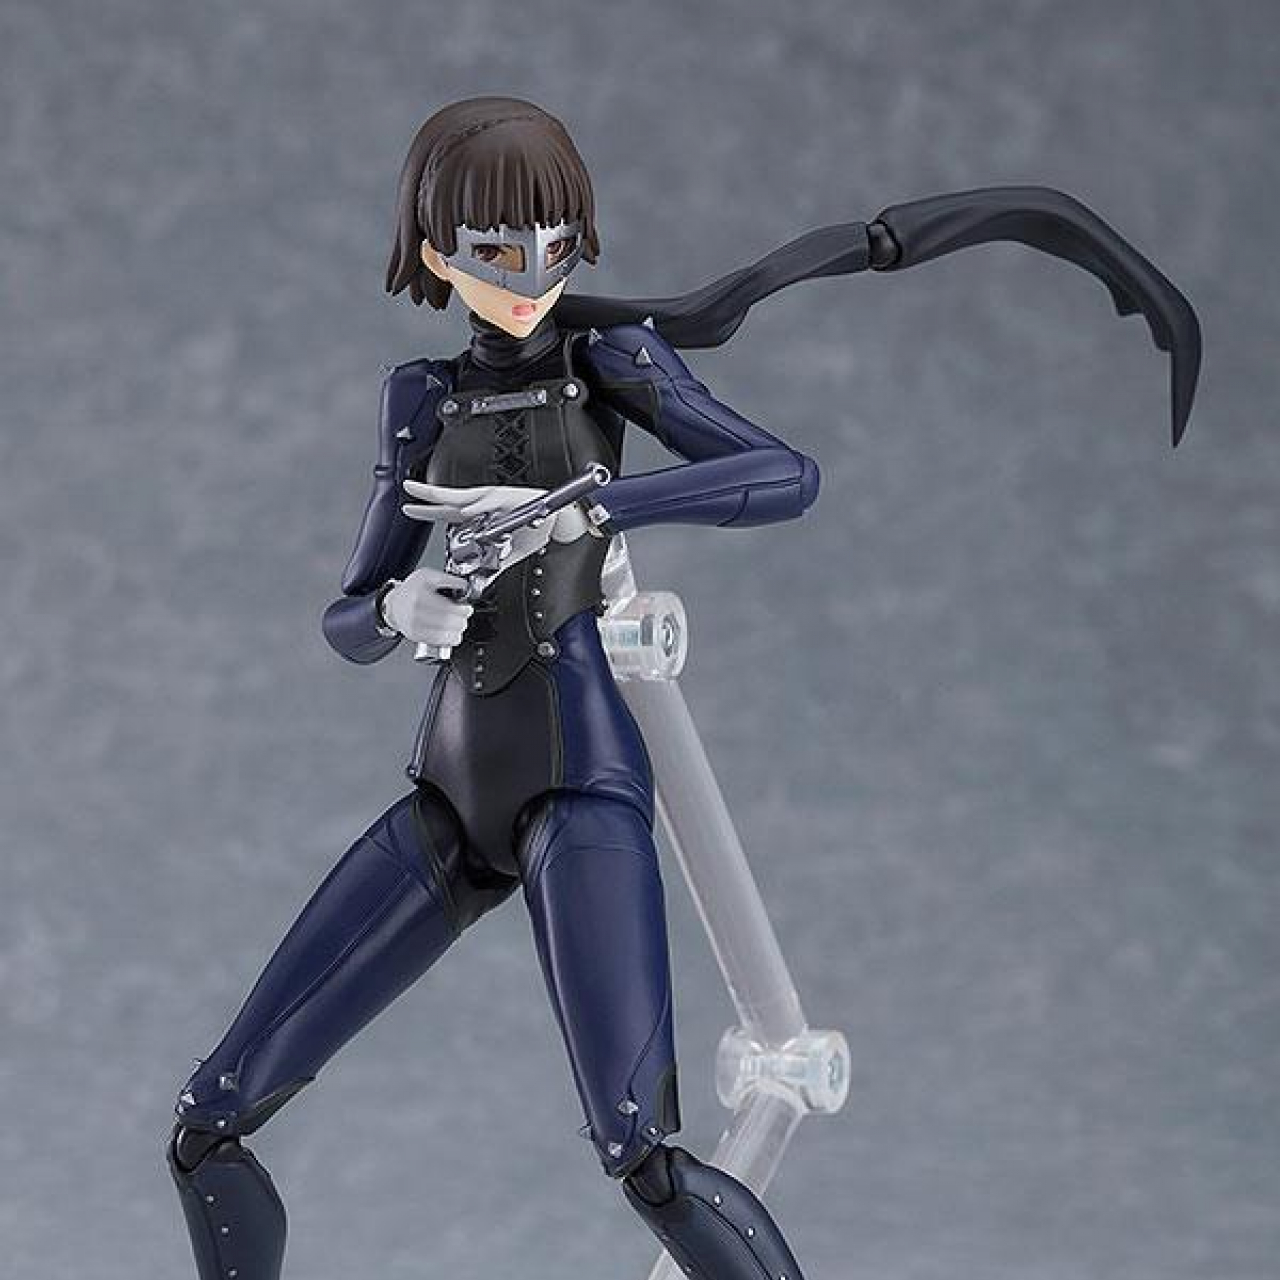 Persona 5 The Animation: Queen (14cm)